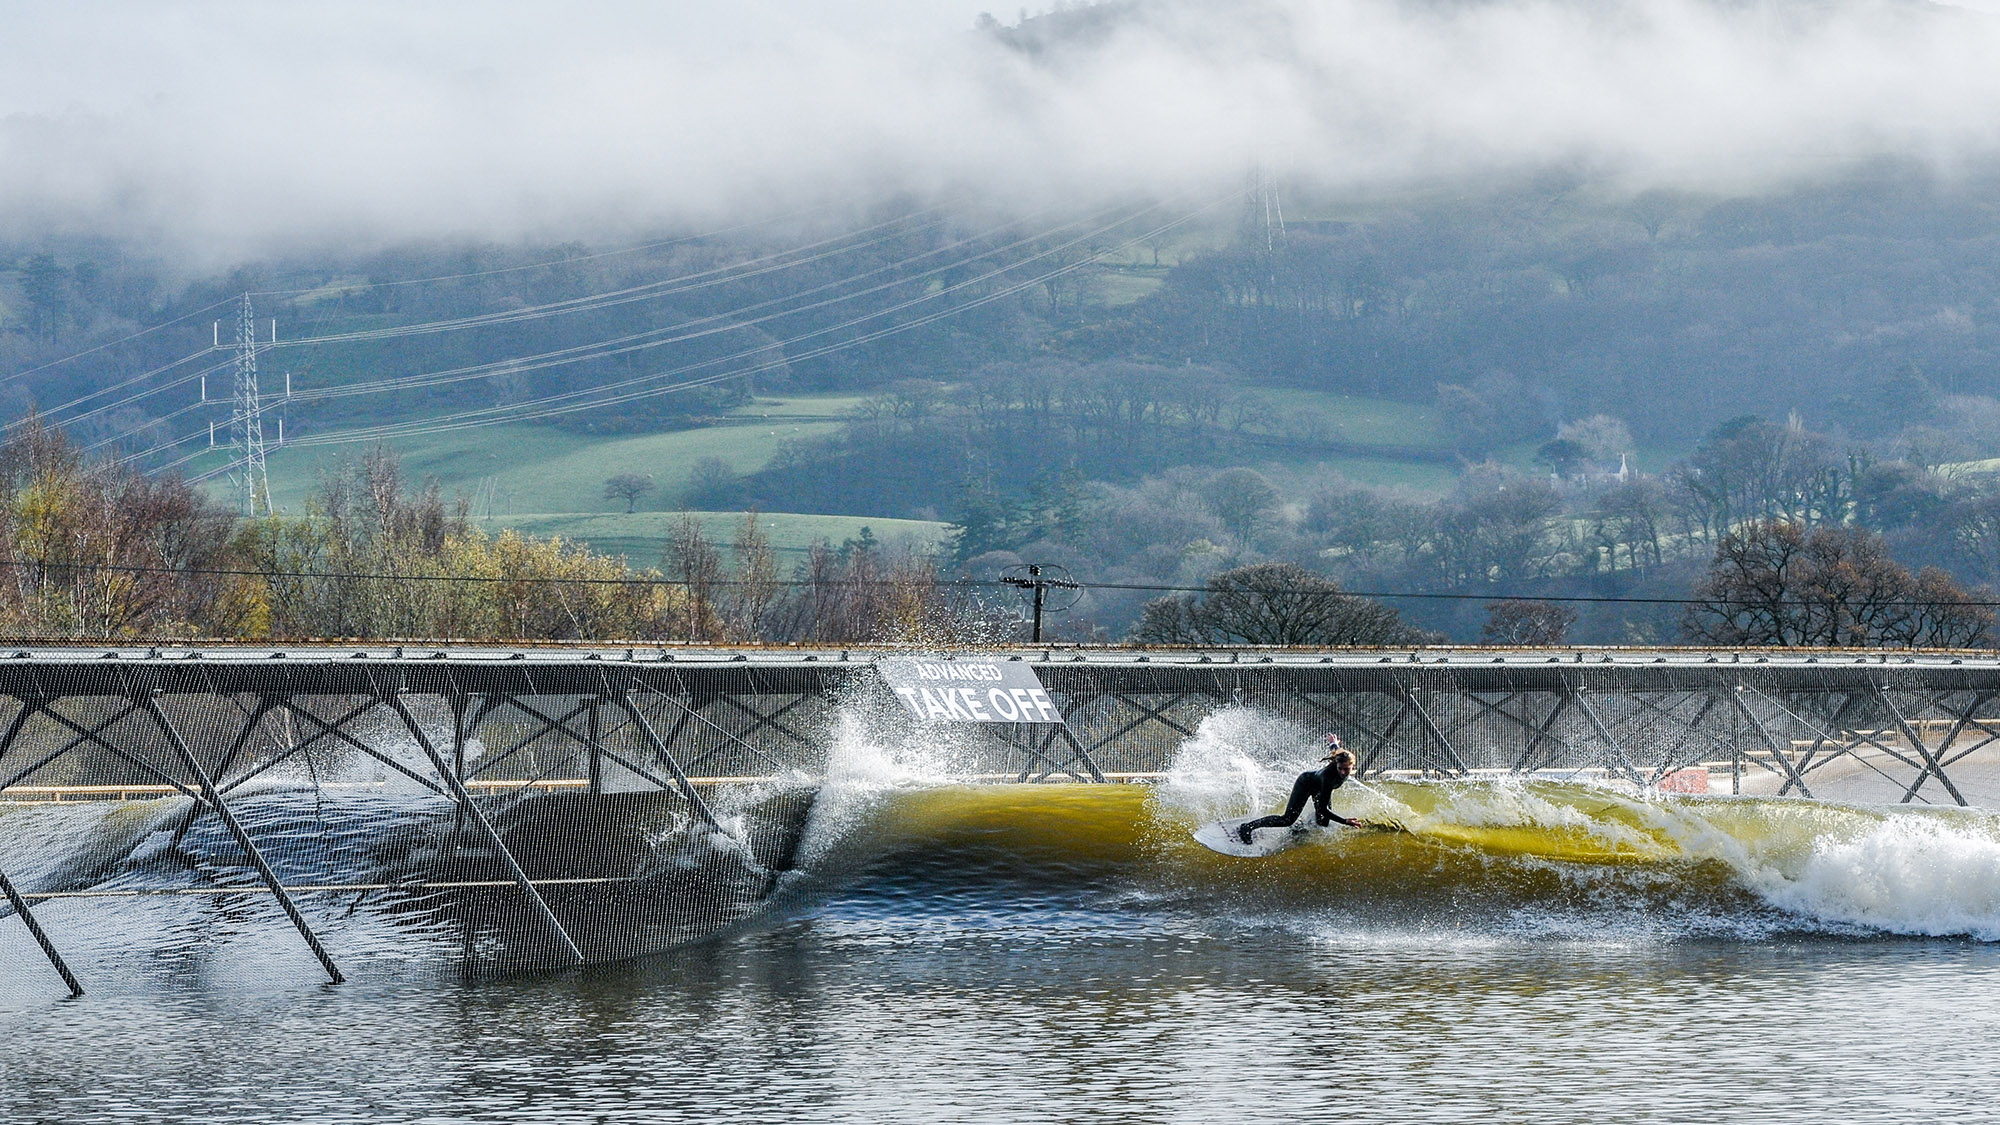 adventure parc snowdonia wave pool